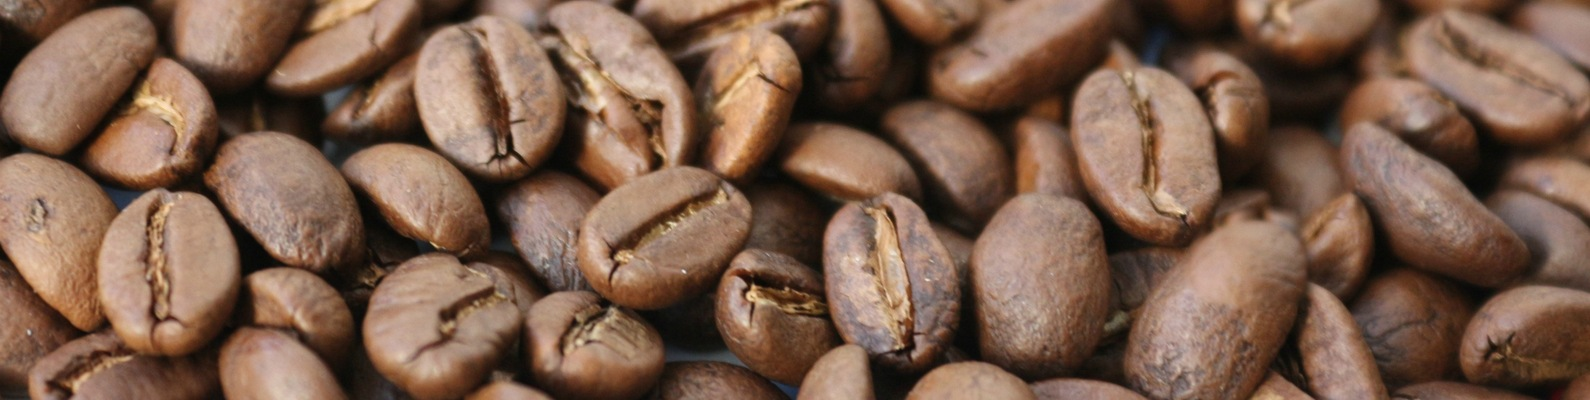 Arabica robusta coffee price